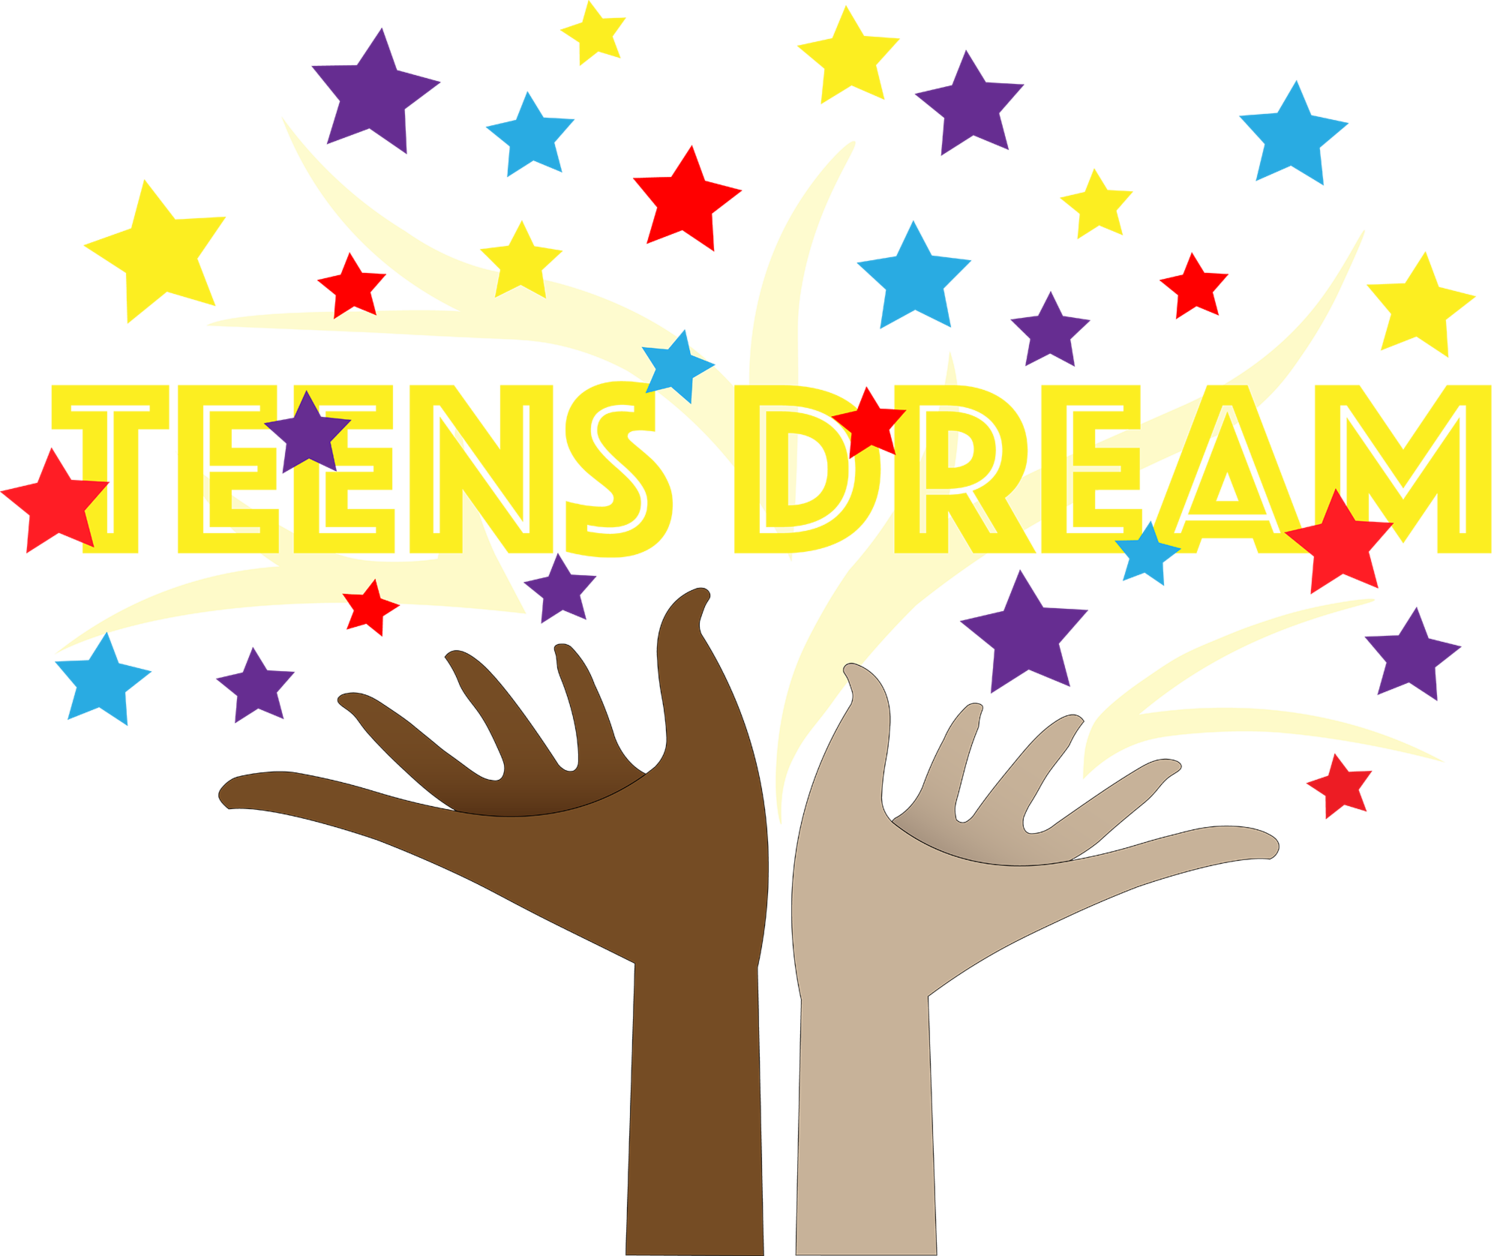 www.teensdreamcolab.org